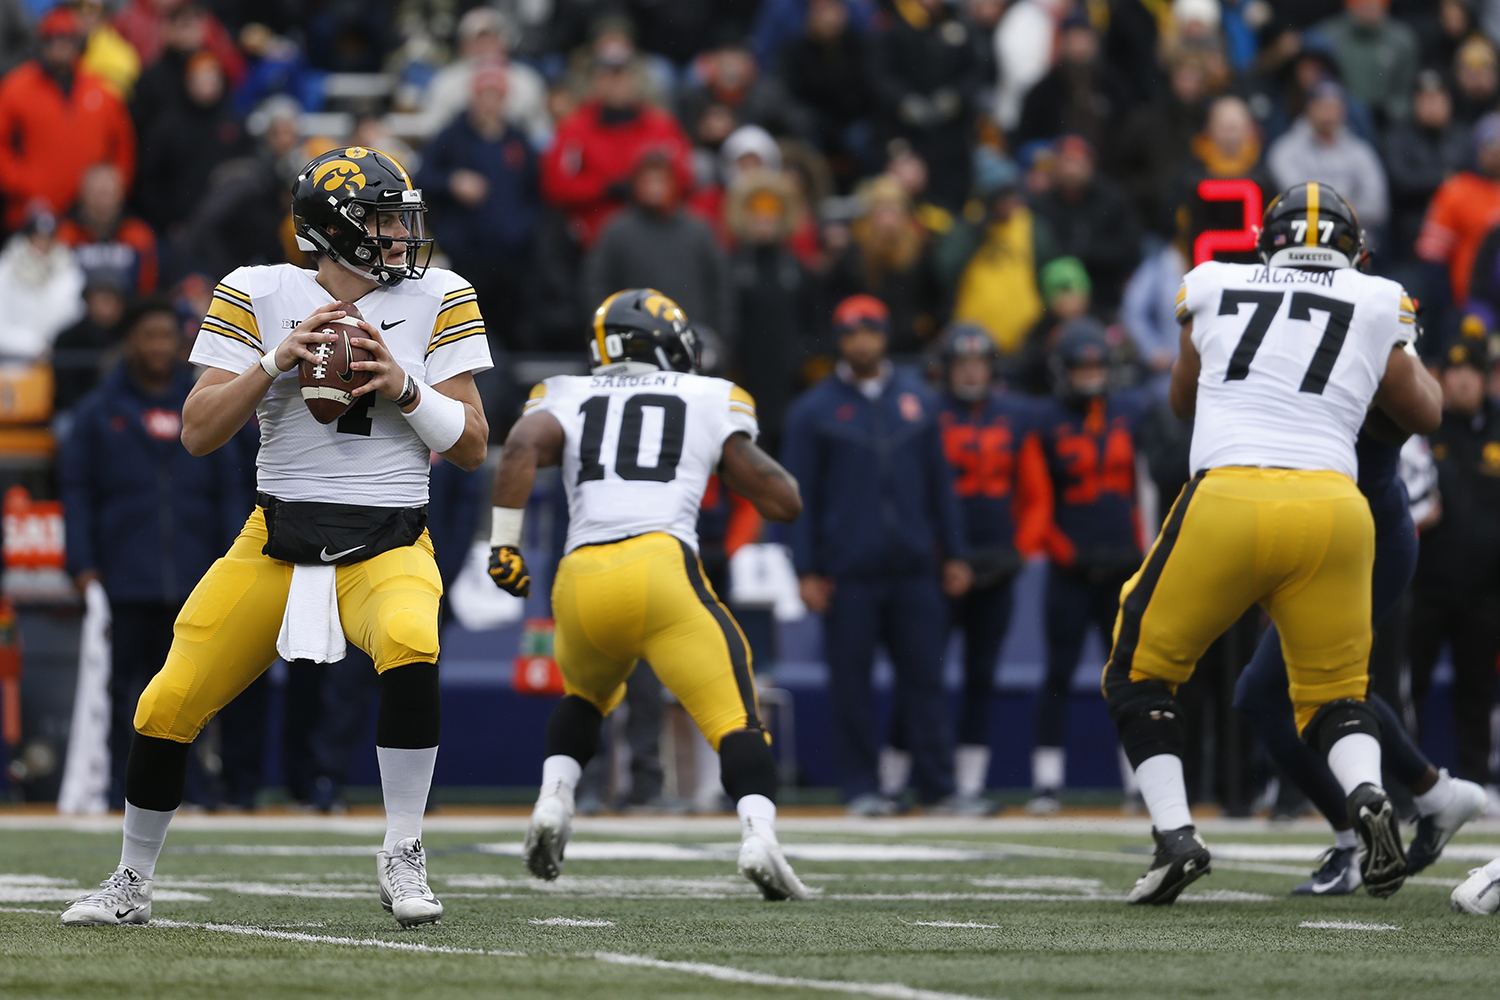 Iowa quarterback Nate Stanley drops back to pass during Iowa's game against Illinois at Memorial Stadium in Champaign, IL, on Saturday, Nov. 17, 2018. The Hawkeyes defeated the Fighting Illini 63-0.